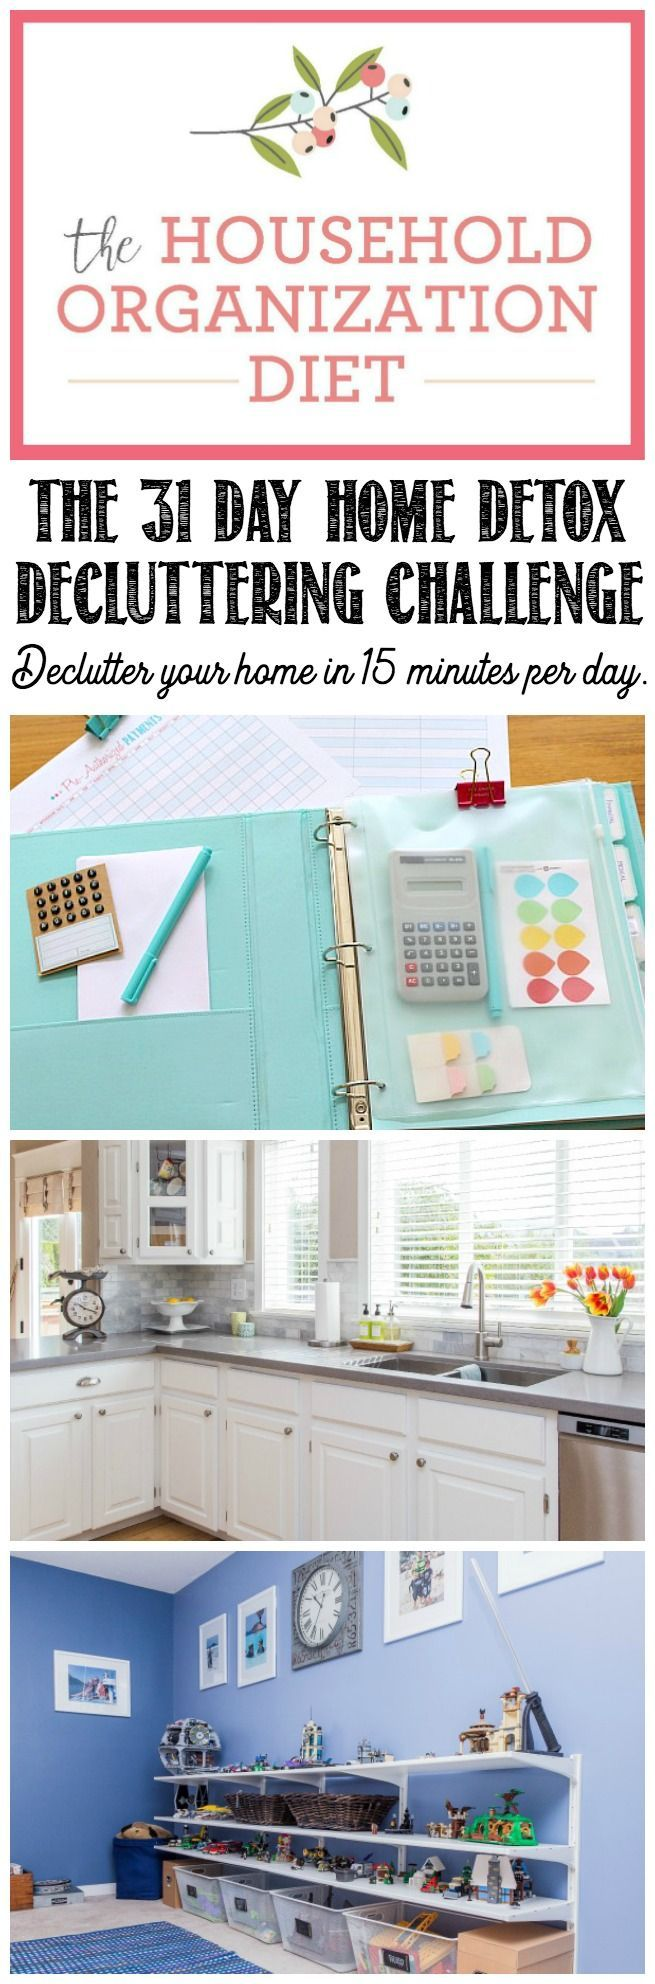 Jumpstart your home decluttering and organization with this 31 day home detox. Just 15 minutes per day to get rid of all of that unwanted stuff that's weighing you down! Start at any time! Free printables included.